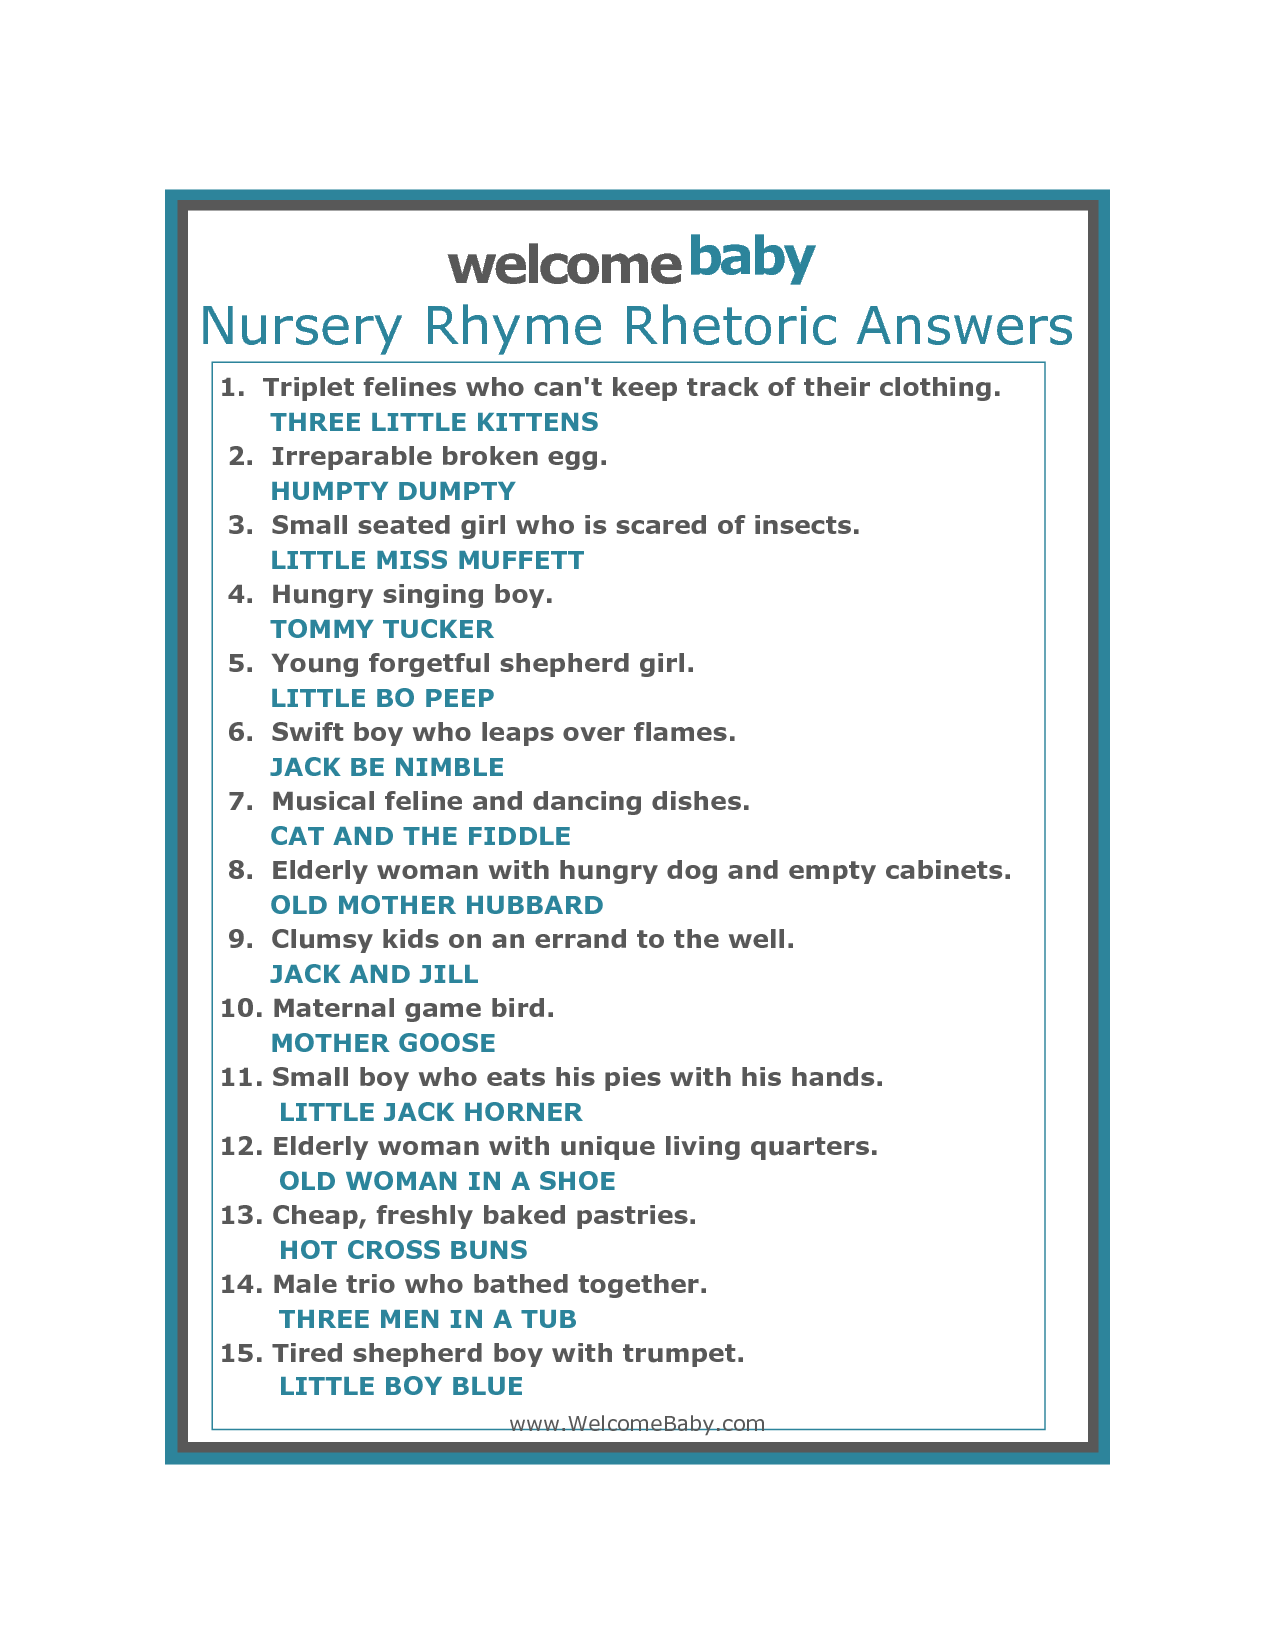 Amusing Name That Nursery Rhyme Baby Shower Game Free Baby Invitations Comfy Fill In The Nursery